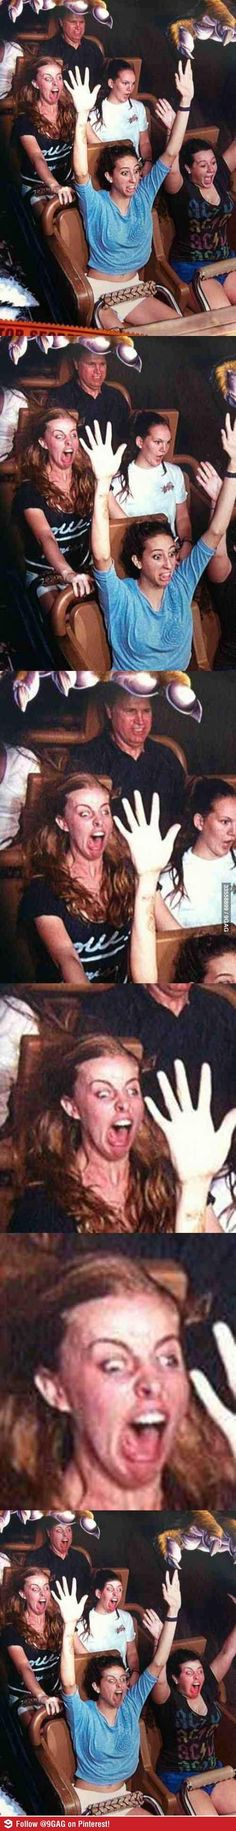 I don't think she likes roller coasters